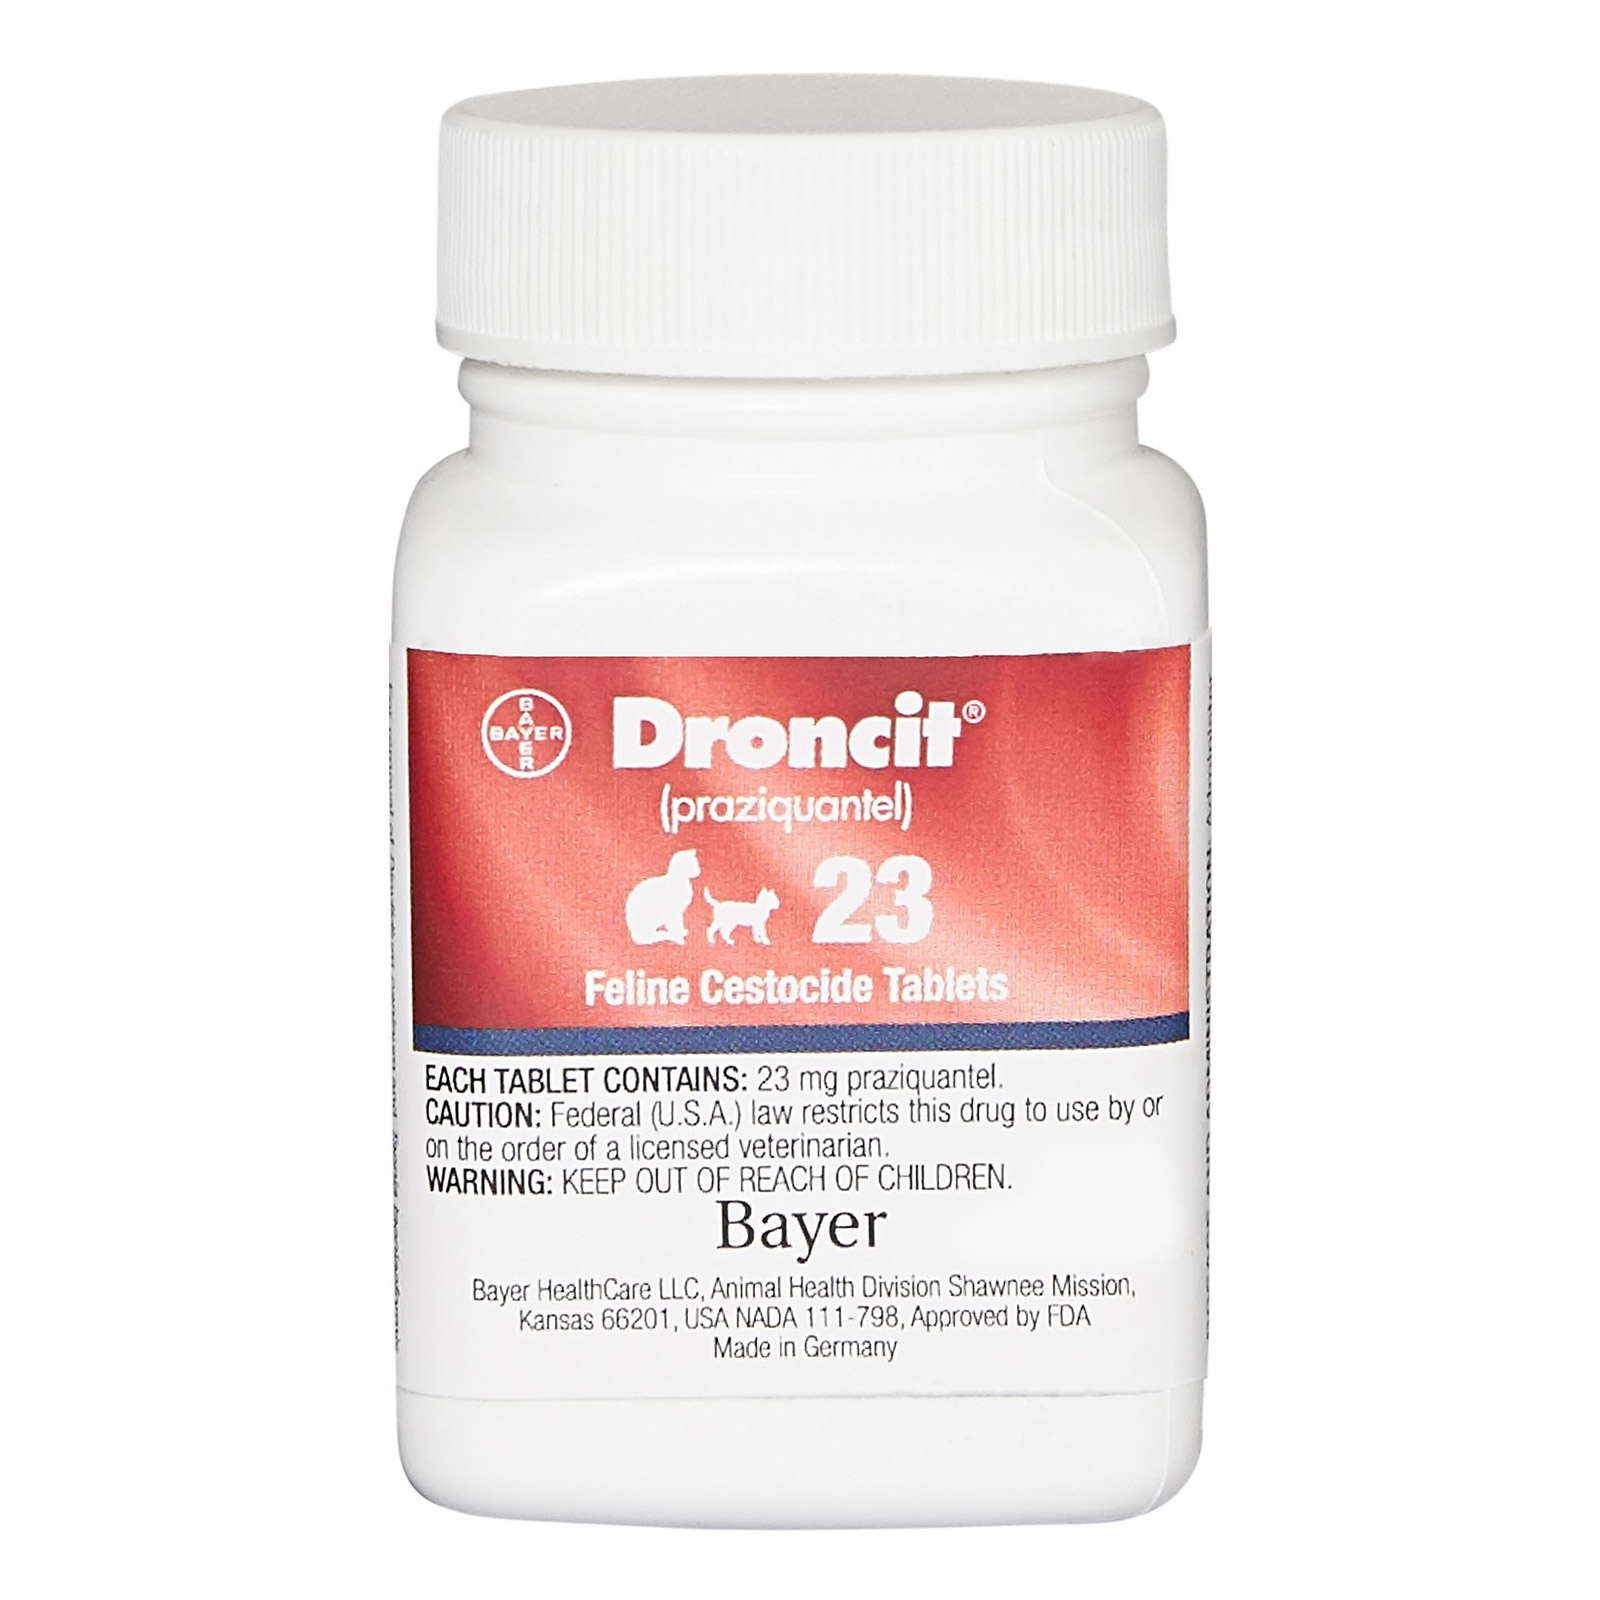 Droncit Tapewormer For Cats 4 Tablet Pet Pest & Medical Supplies